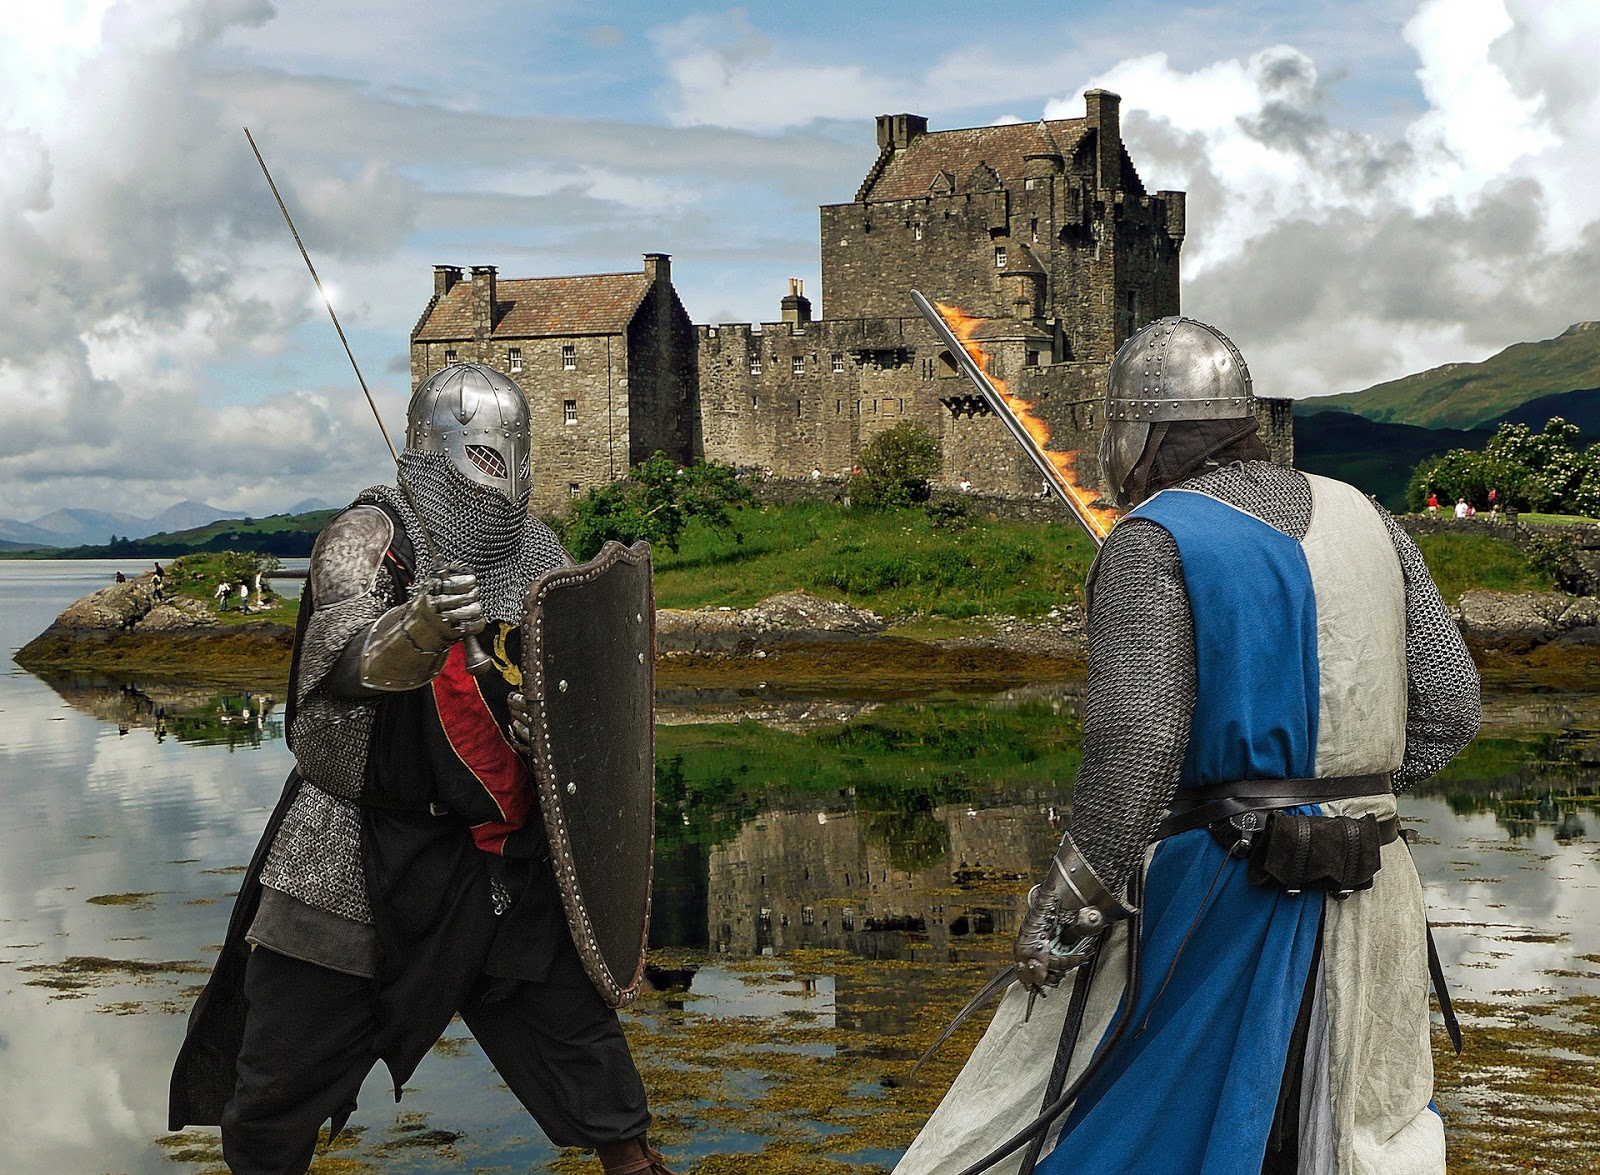 two knights sword fight in front of a castle to illustrate a blog post about war movie sword fights